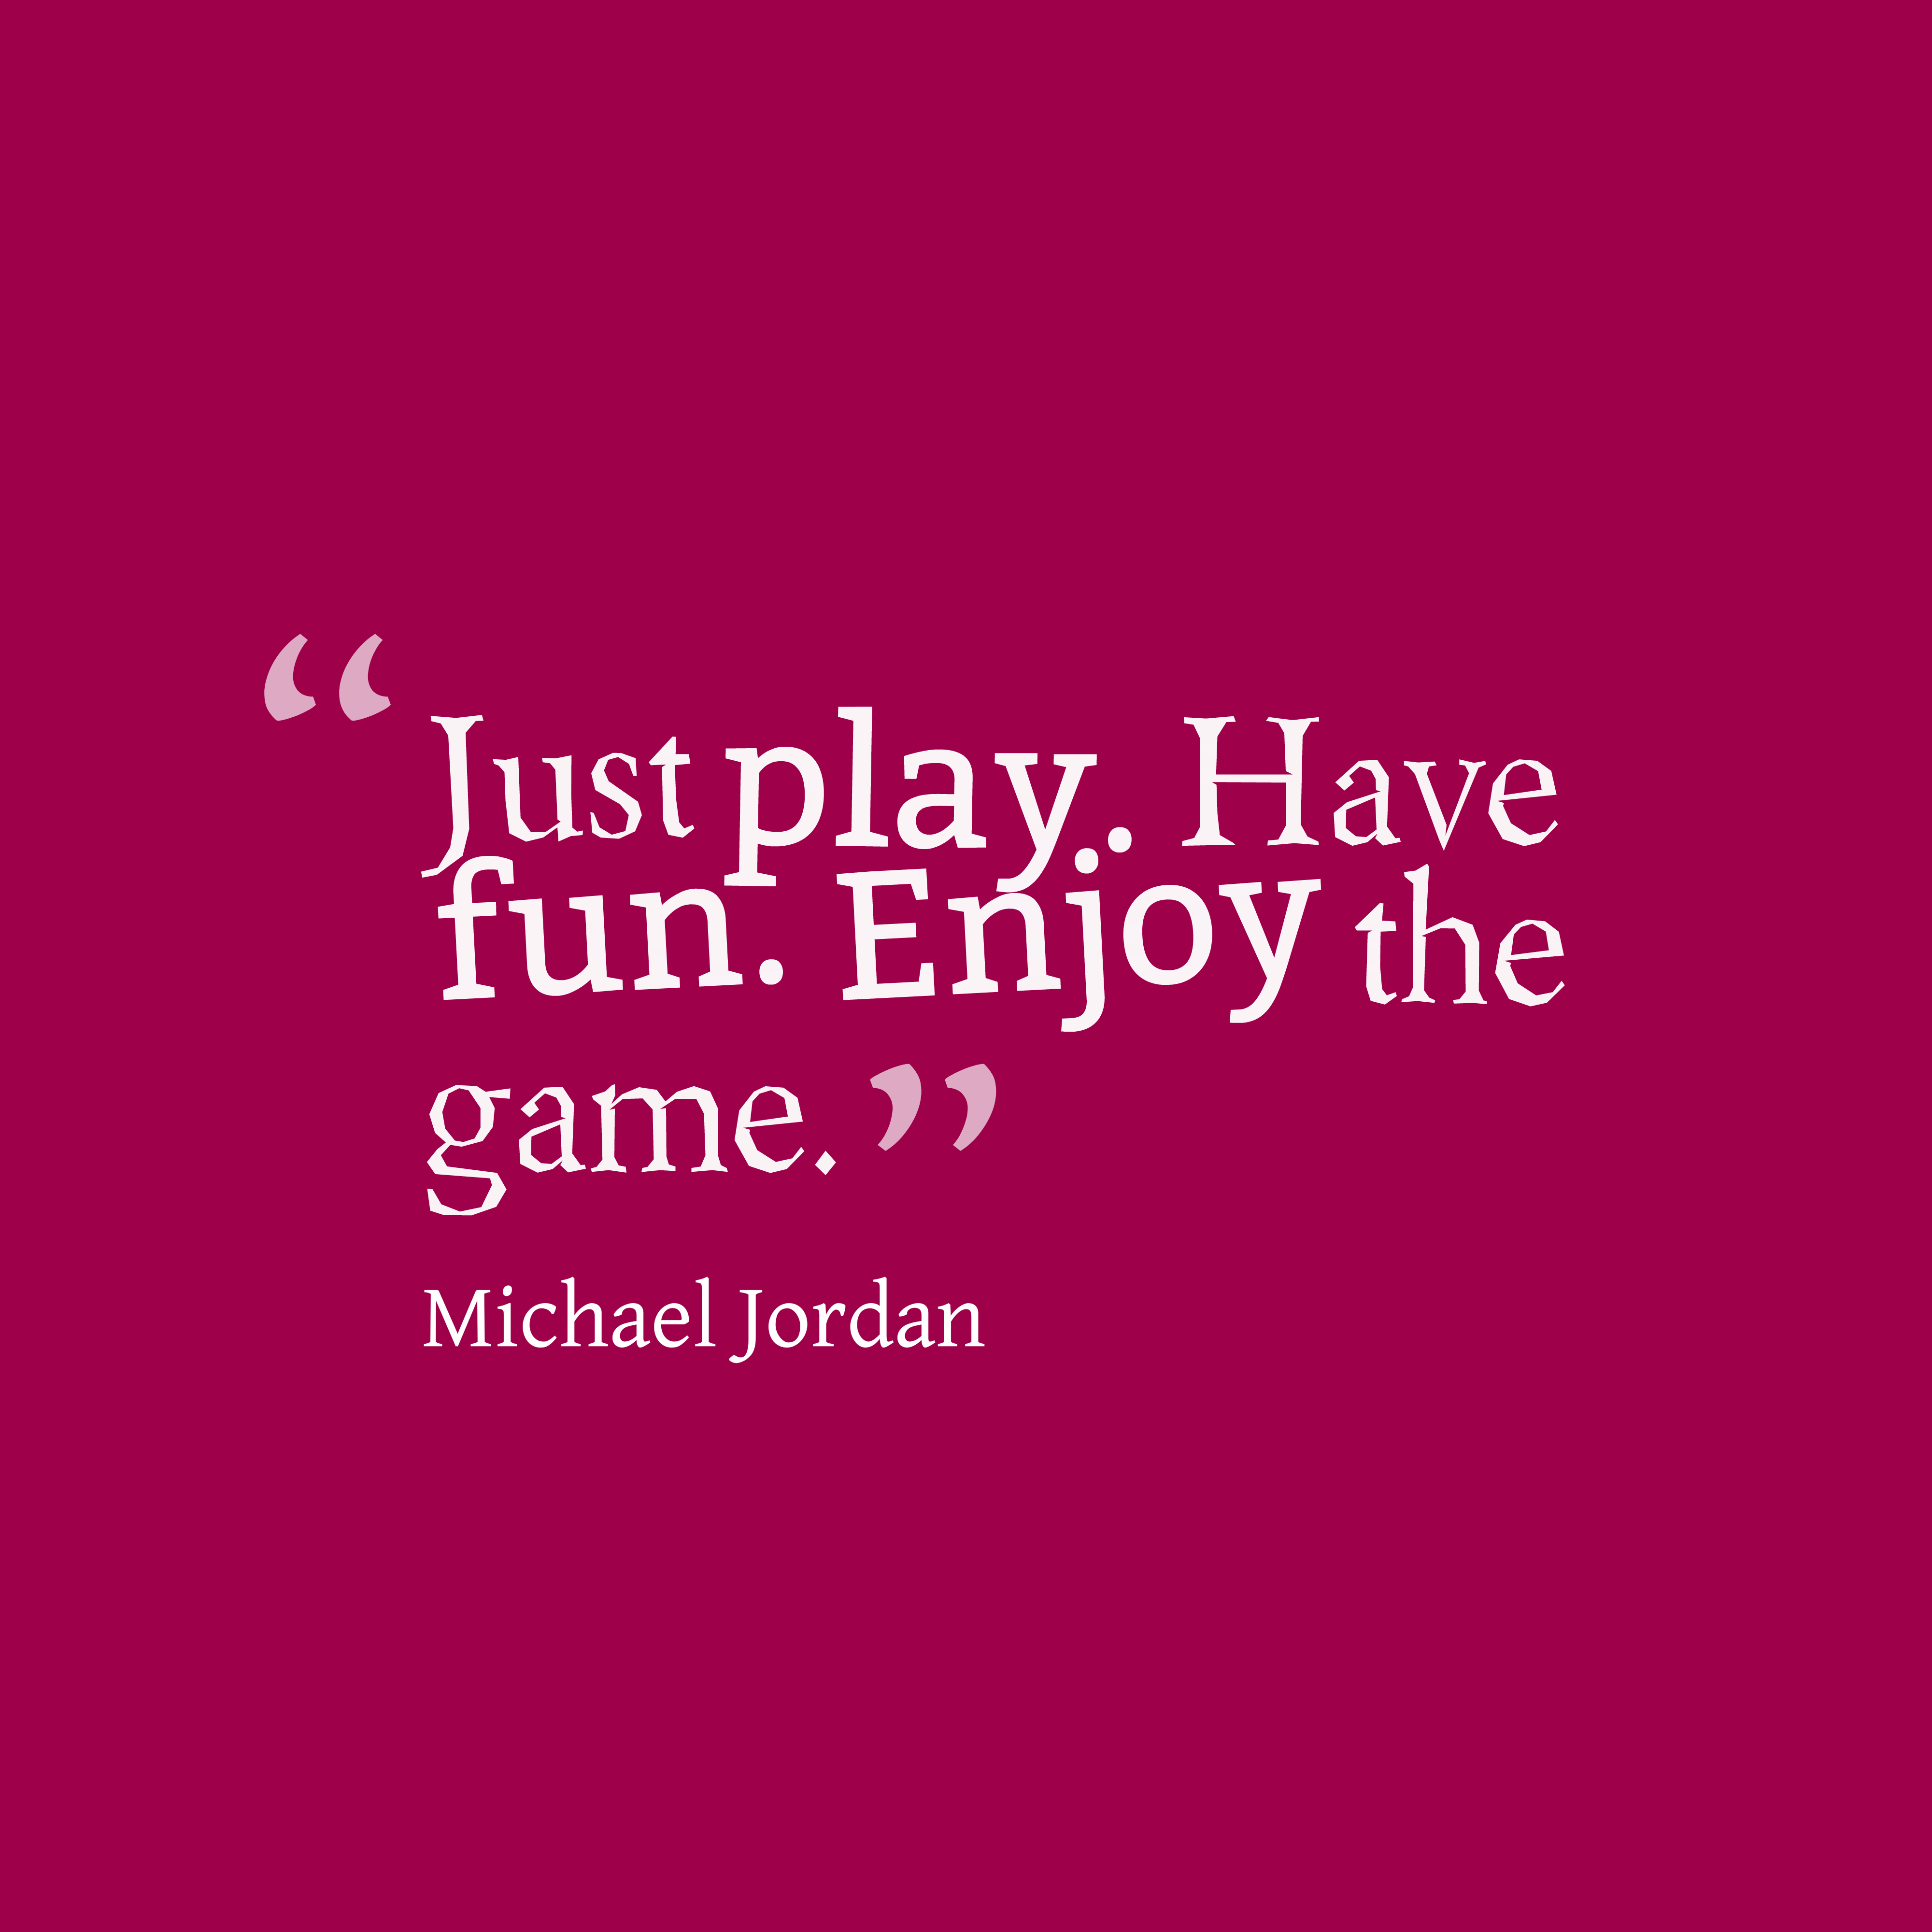 Just Play Have Fun Enjoy Quotes By Michael Jordan 60 Png 4 000 4 000 Pixels Play Quotes Work Motivational Quotes Daily Inspiration Quotes